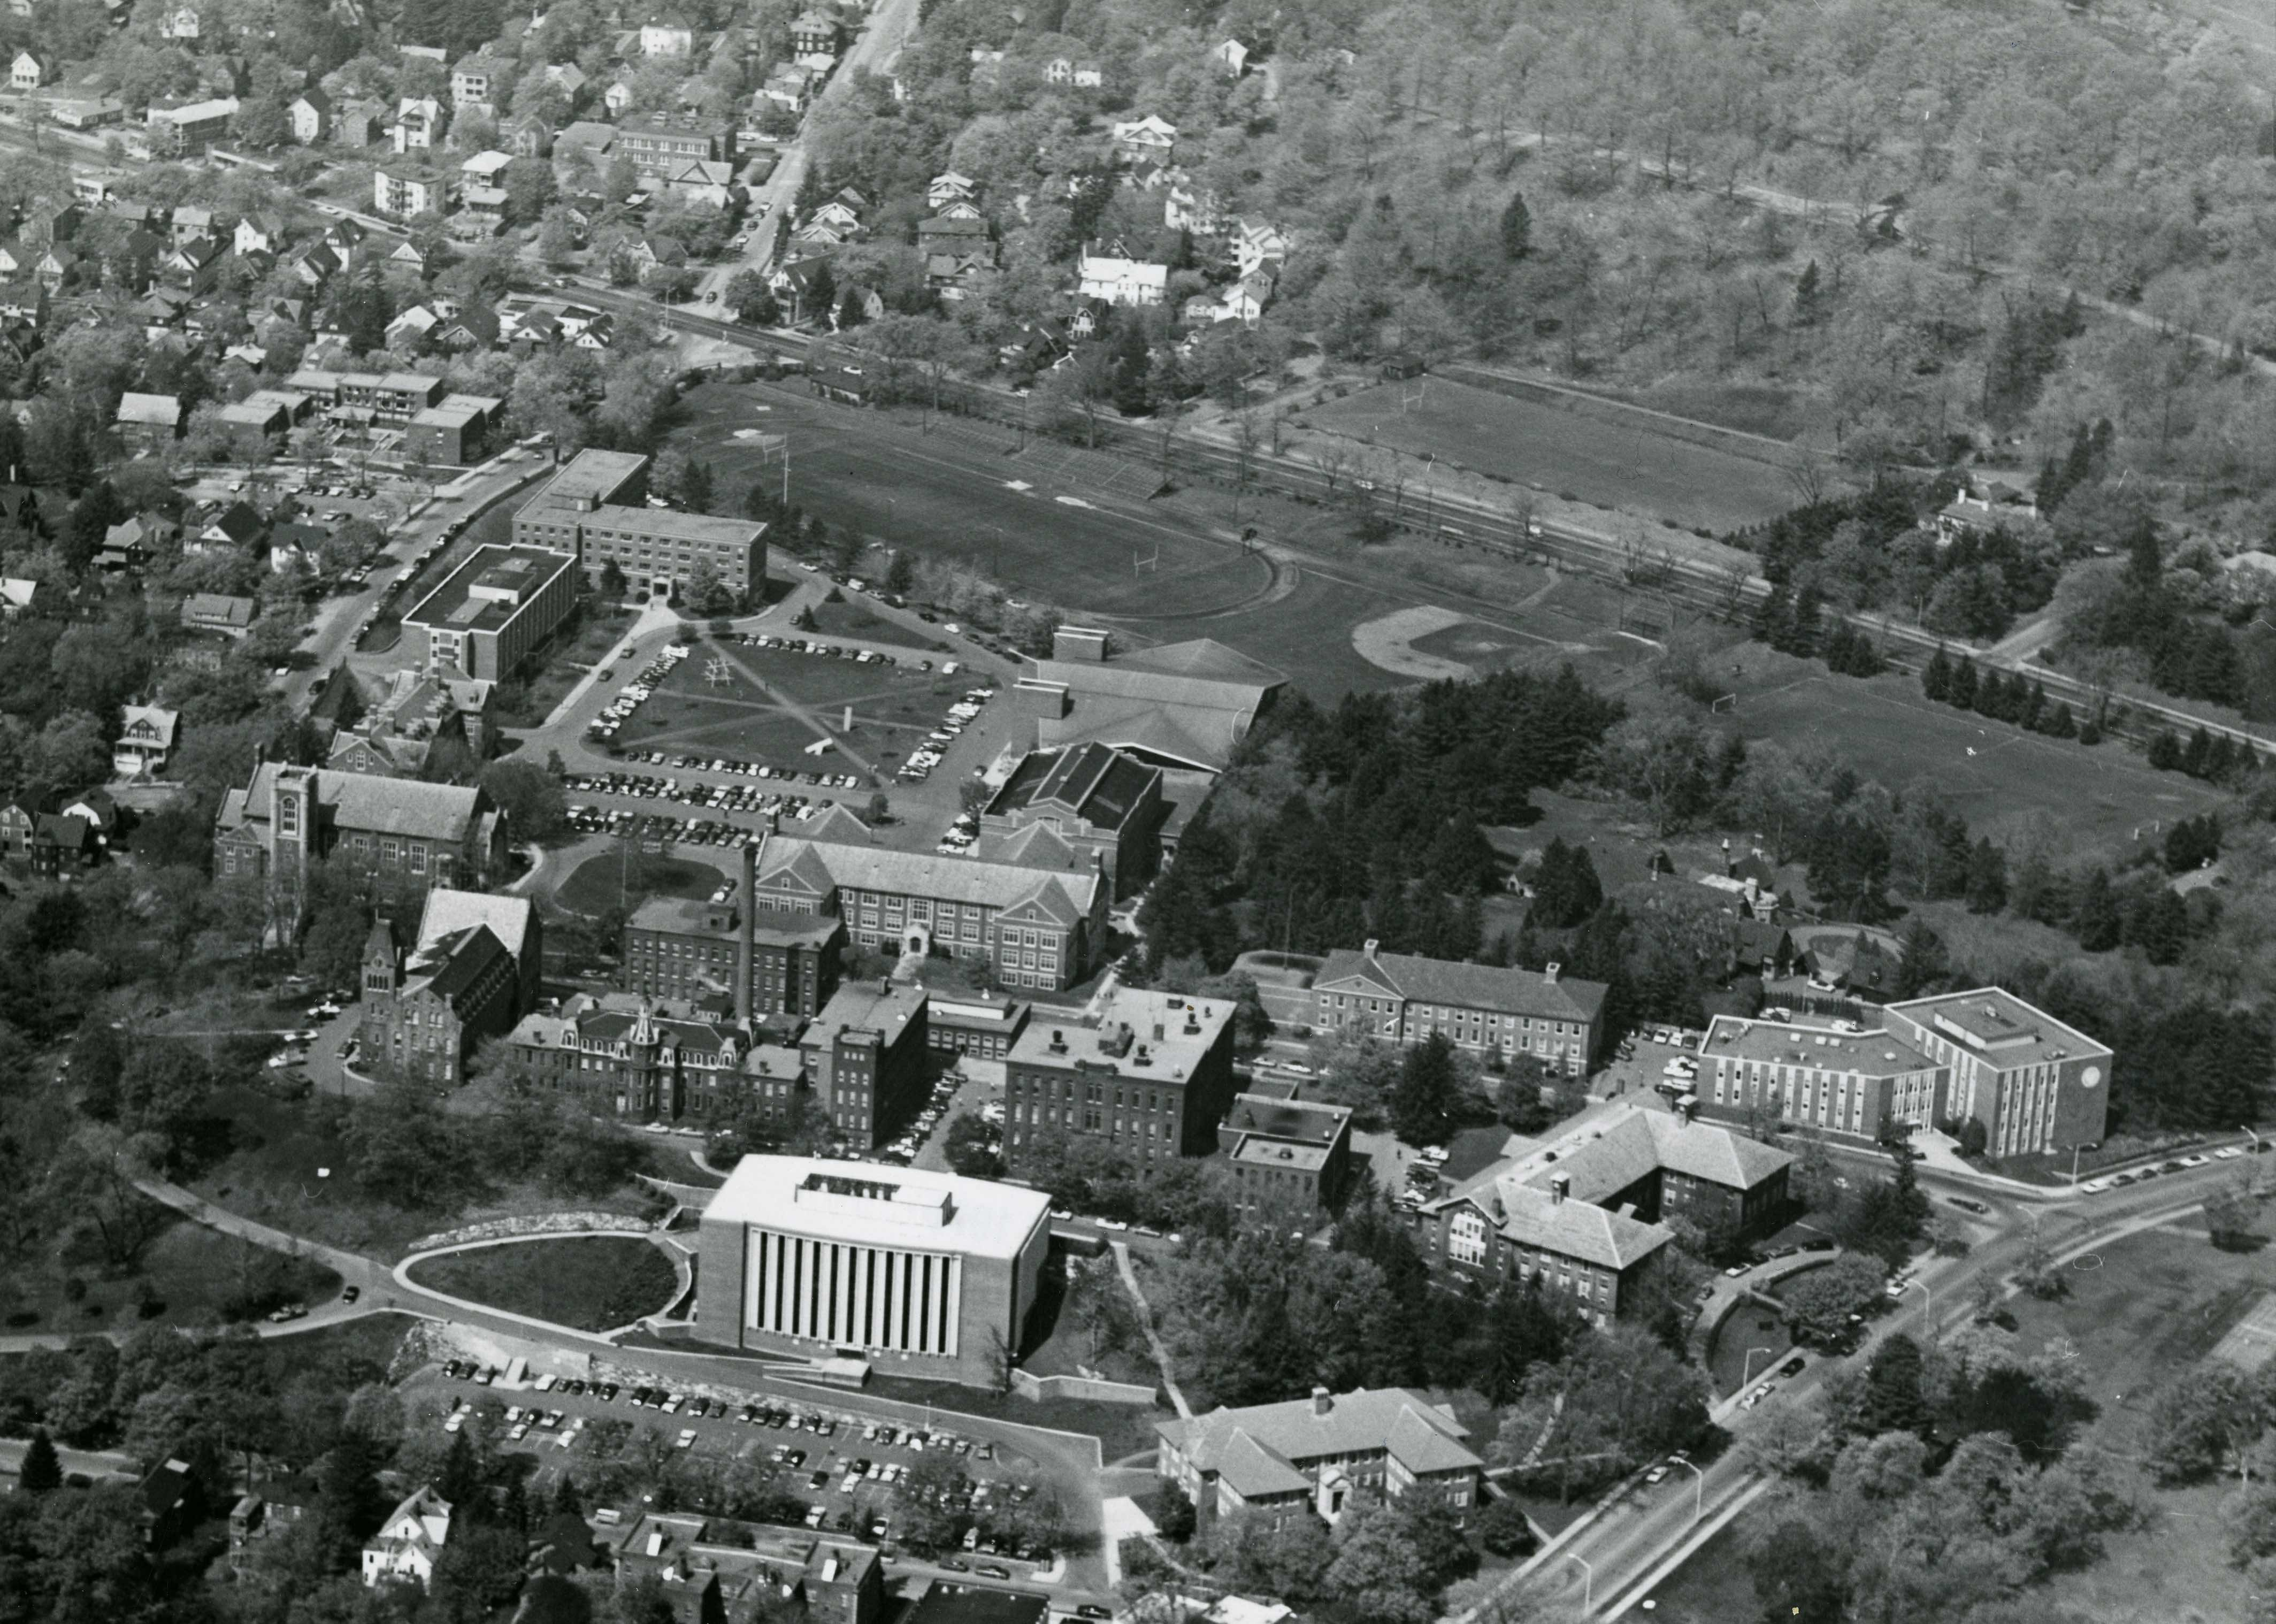 aerial view of WPI campus